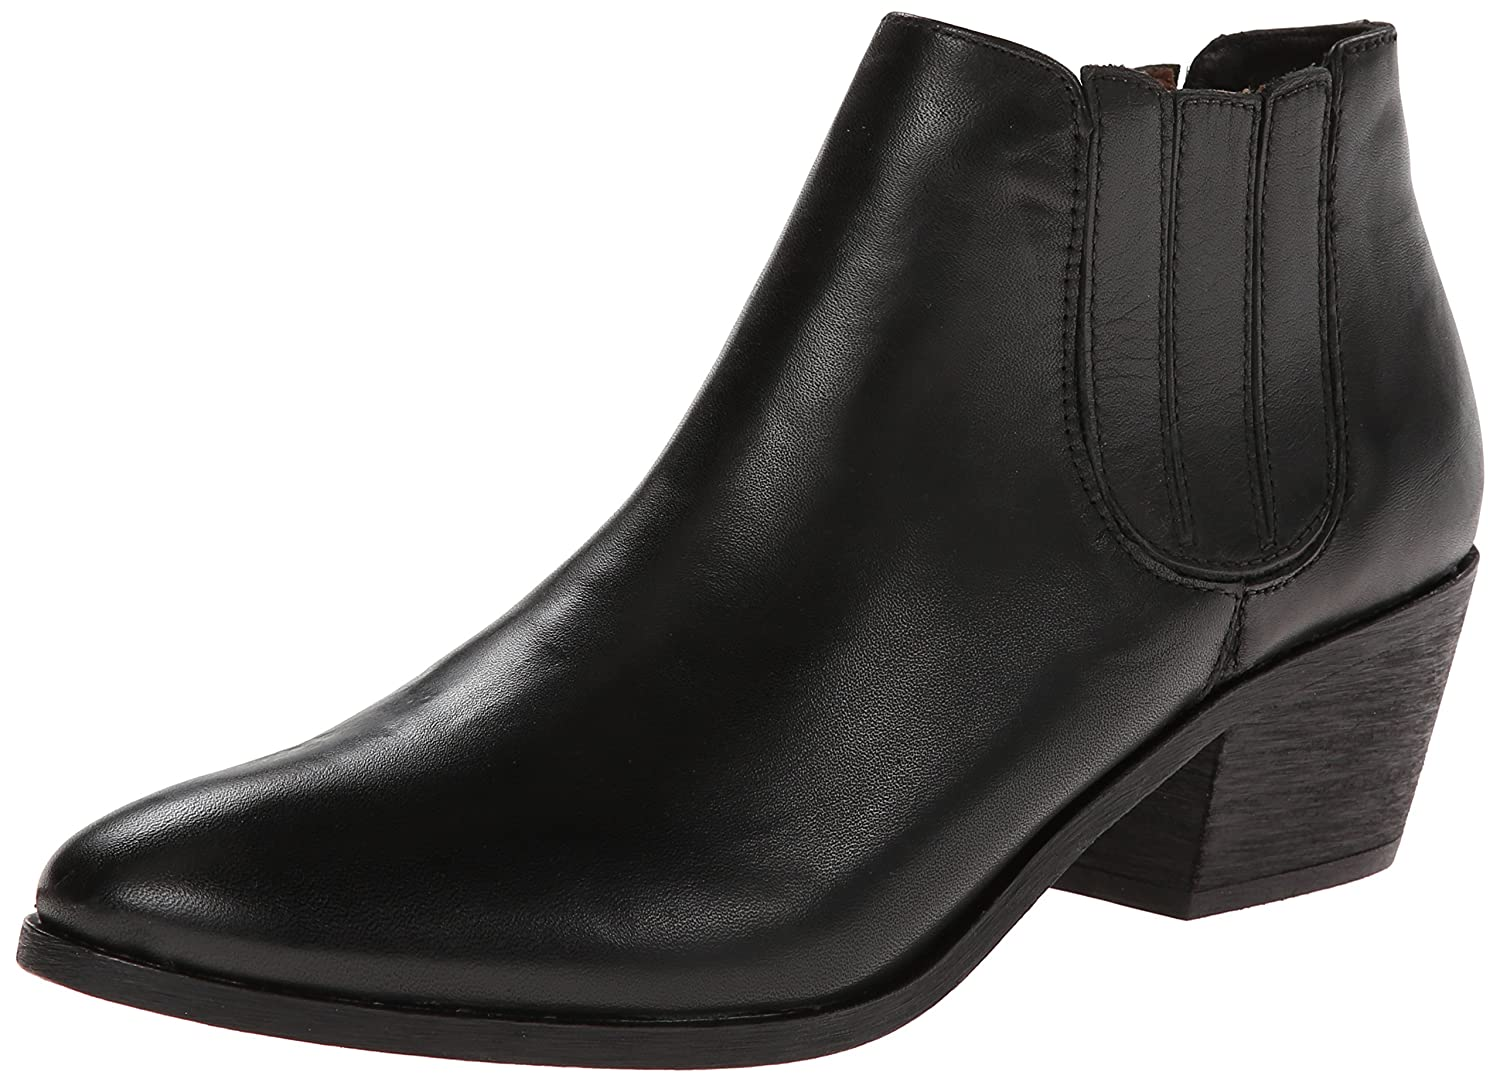 Joie Women's Barlow Boot B00JJ2YK60 37 M EU / 7 B(M) US|Black Leather